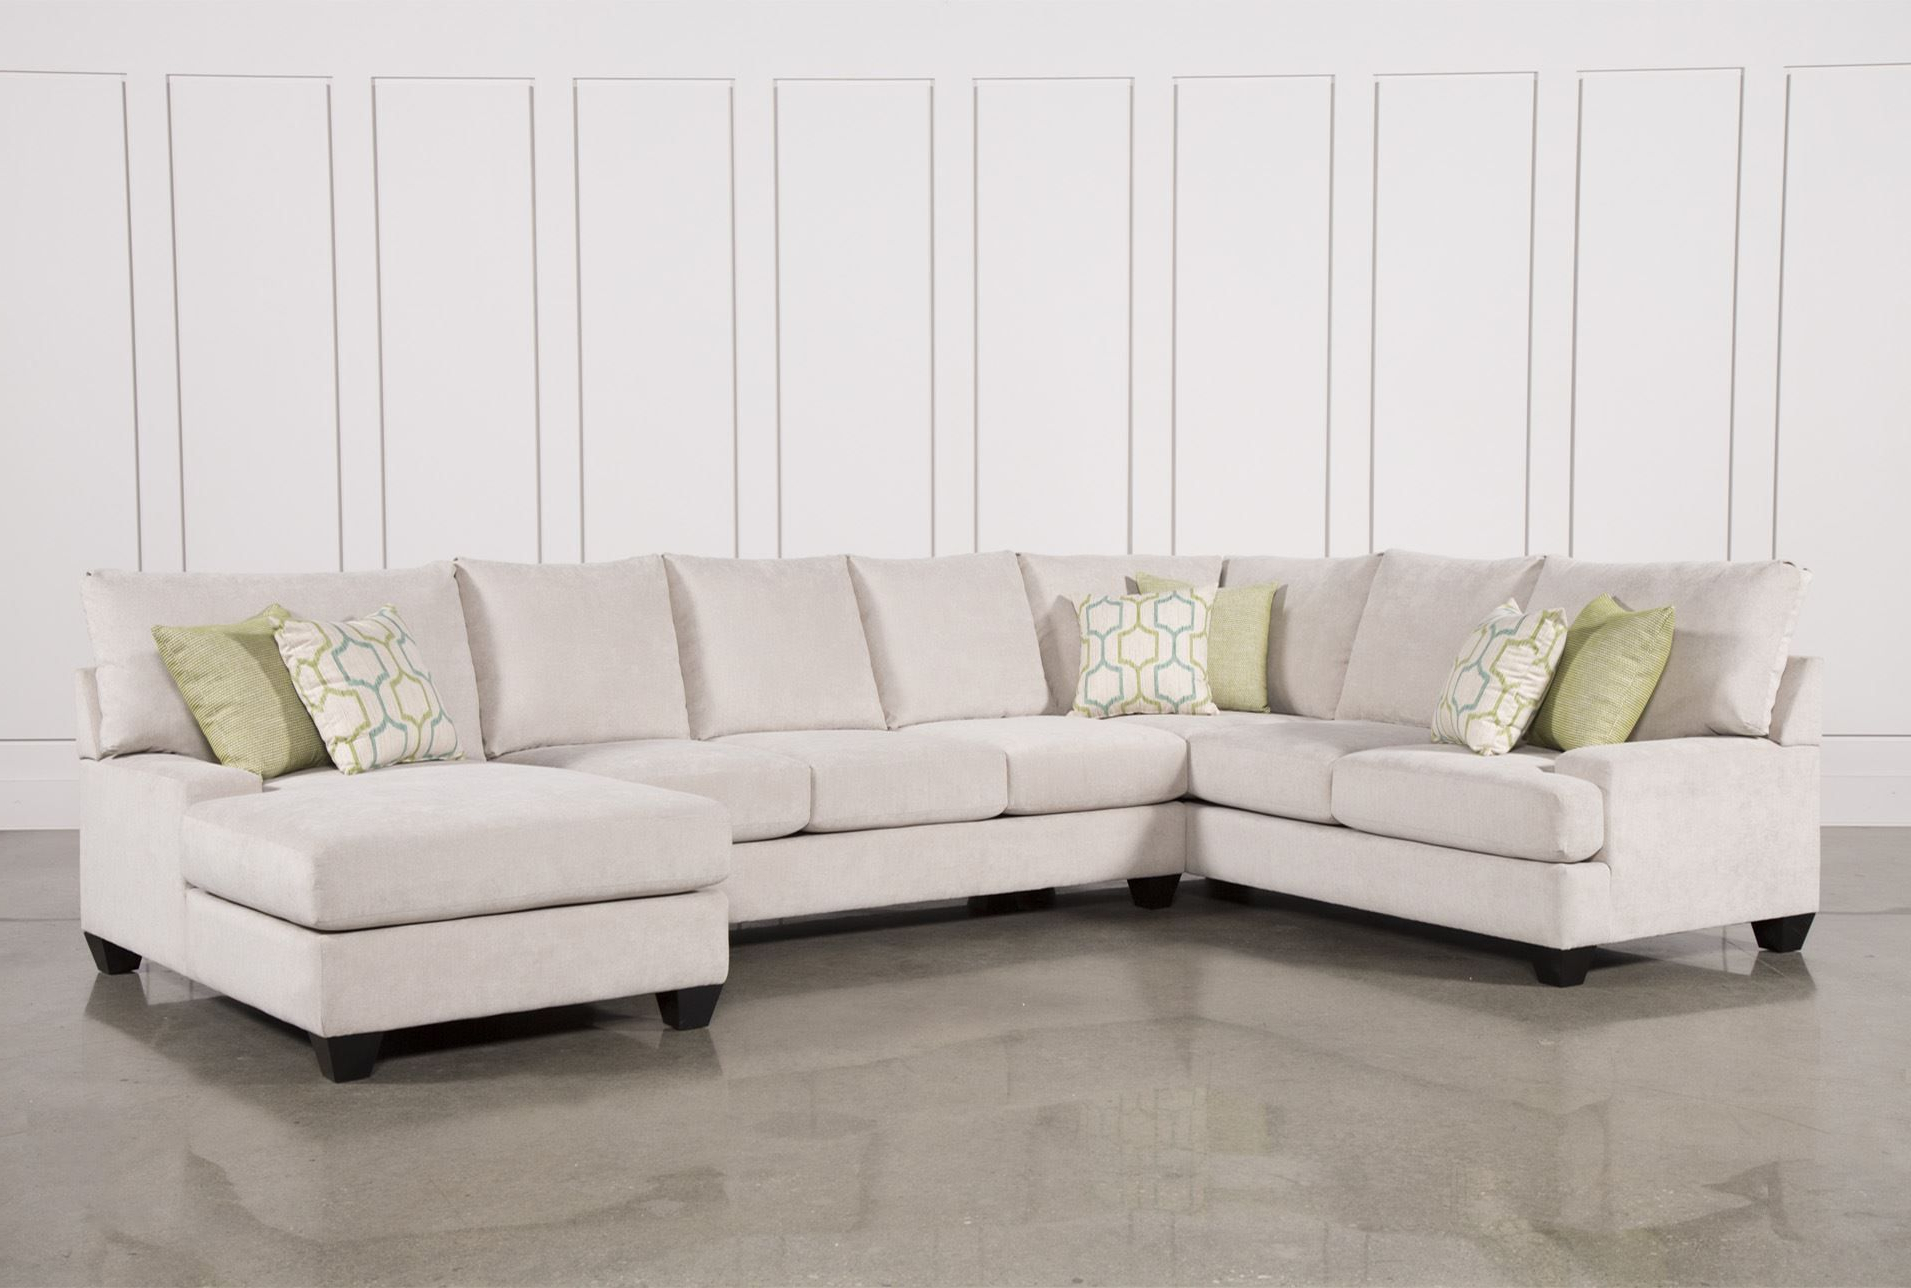 Latest Harper Foam 3 Piece Sectional W/raf Chaise In  (View 6 of 20)